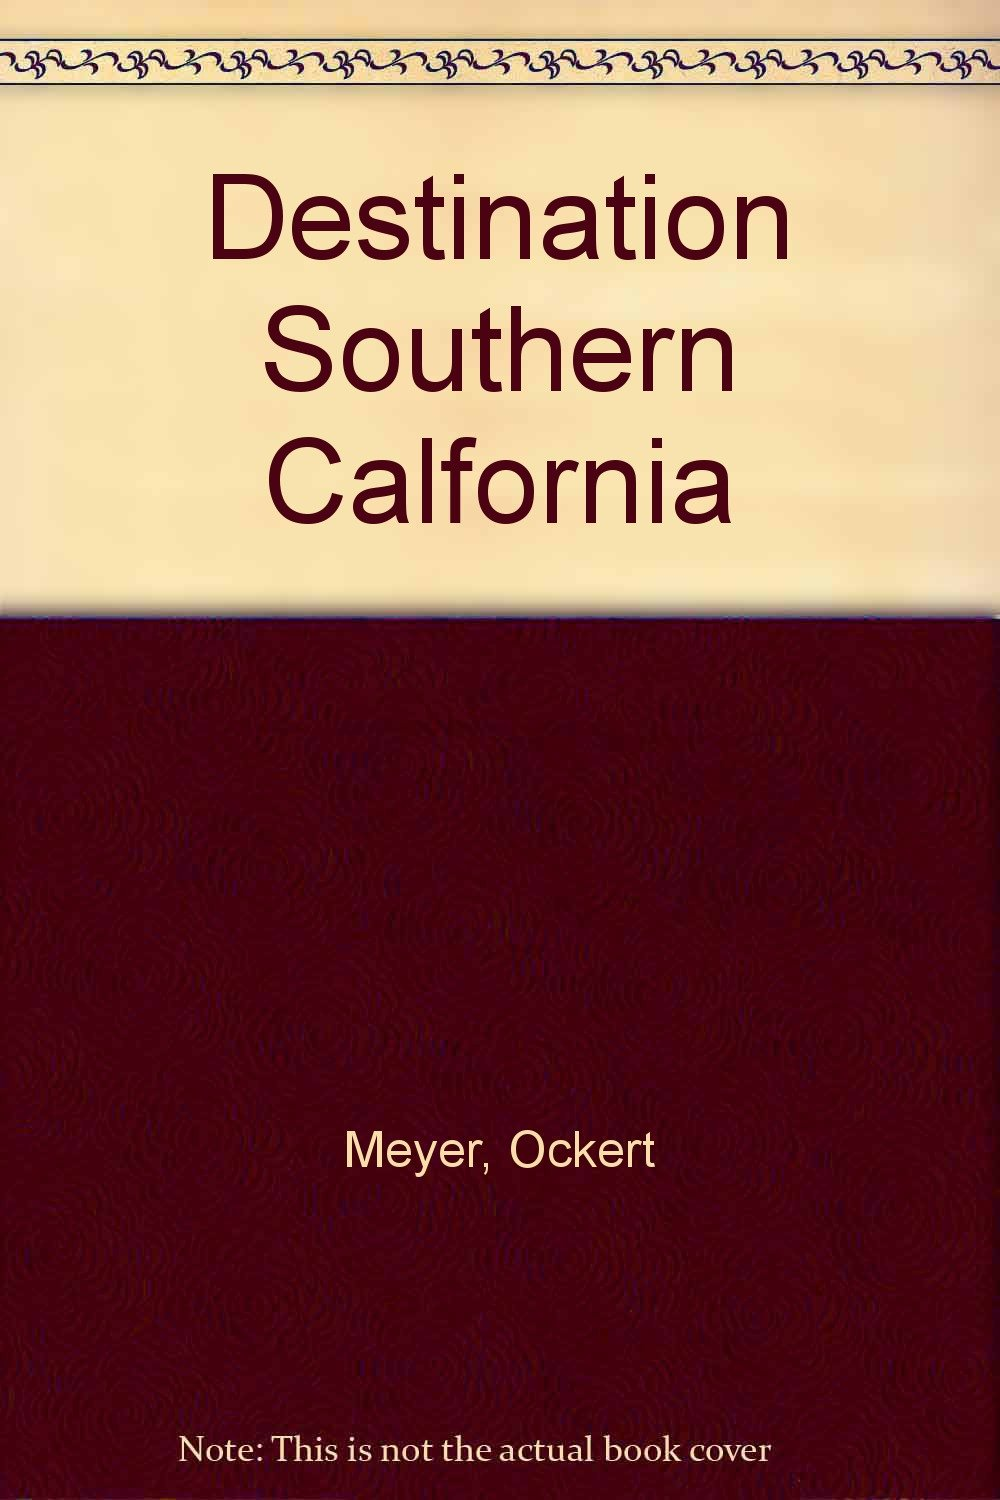 DESTINATION SOUTHERN CALIFORNIA: A GUIDE TO AFFORDABLE